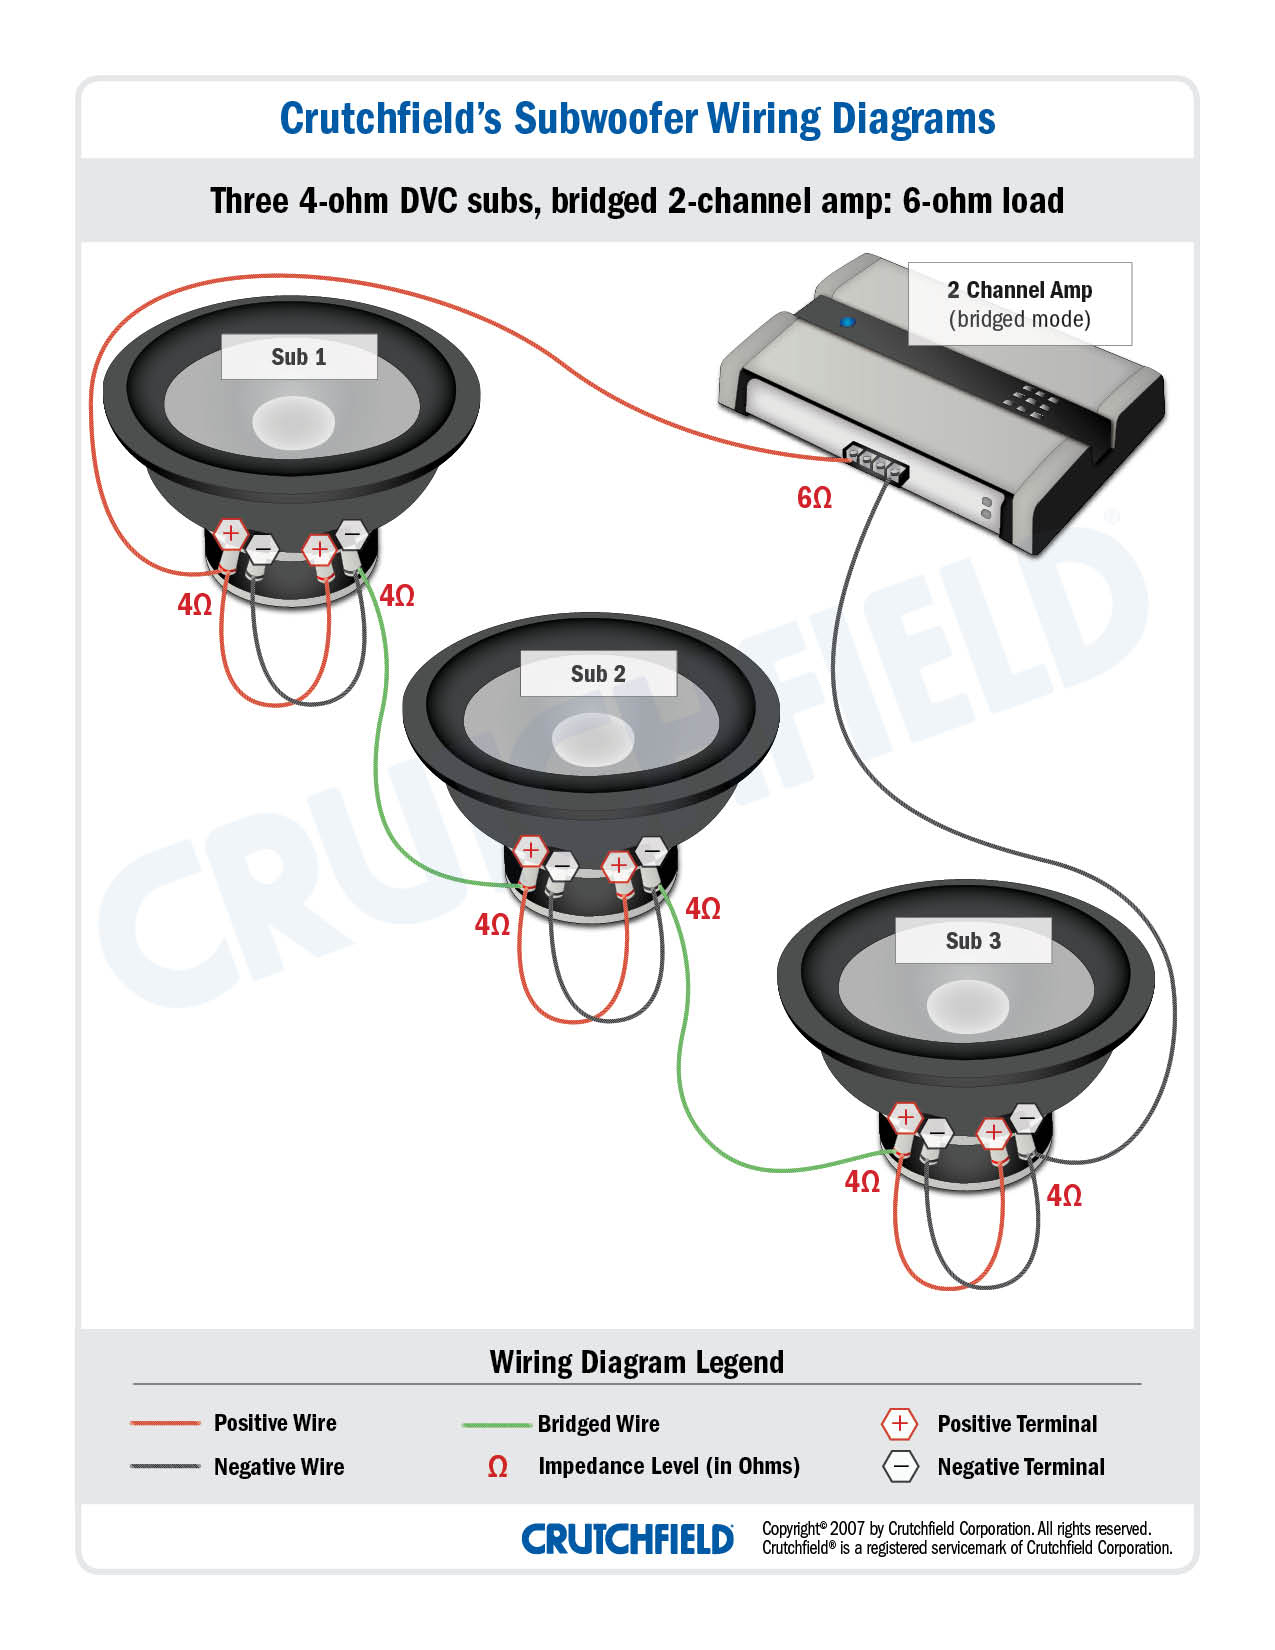 Subwoofer Wiring Diagrams — How To Wire Your Subs - Kicker Comp R 12 Wiring Diagram